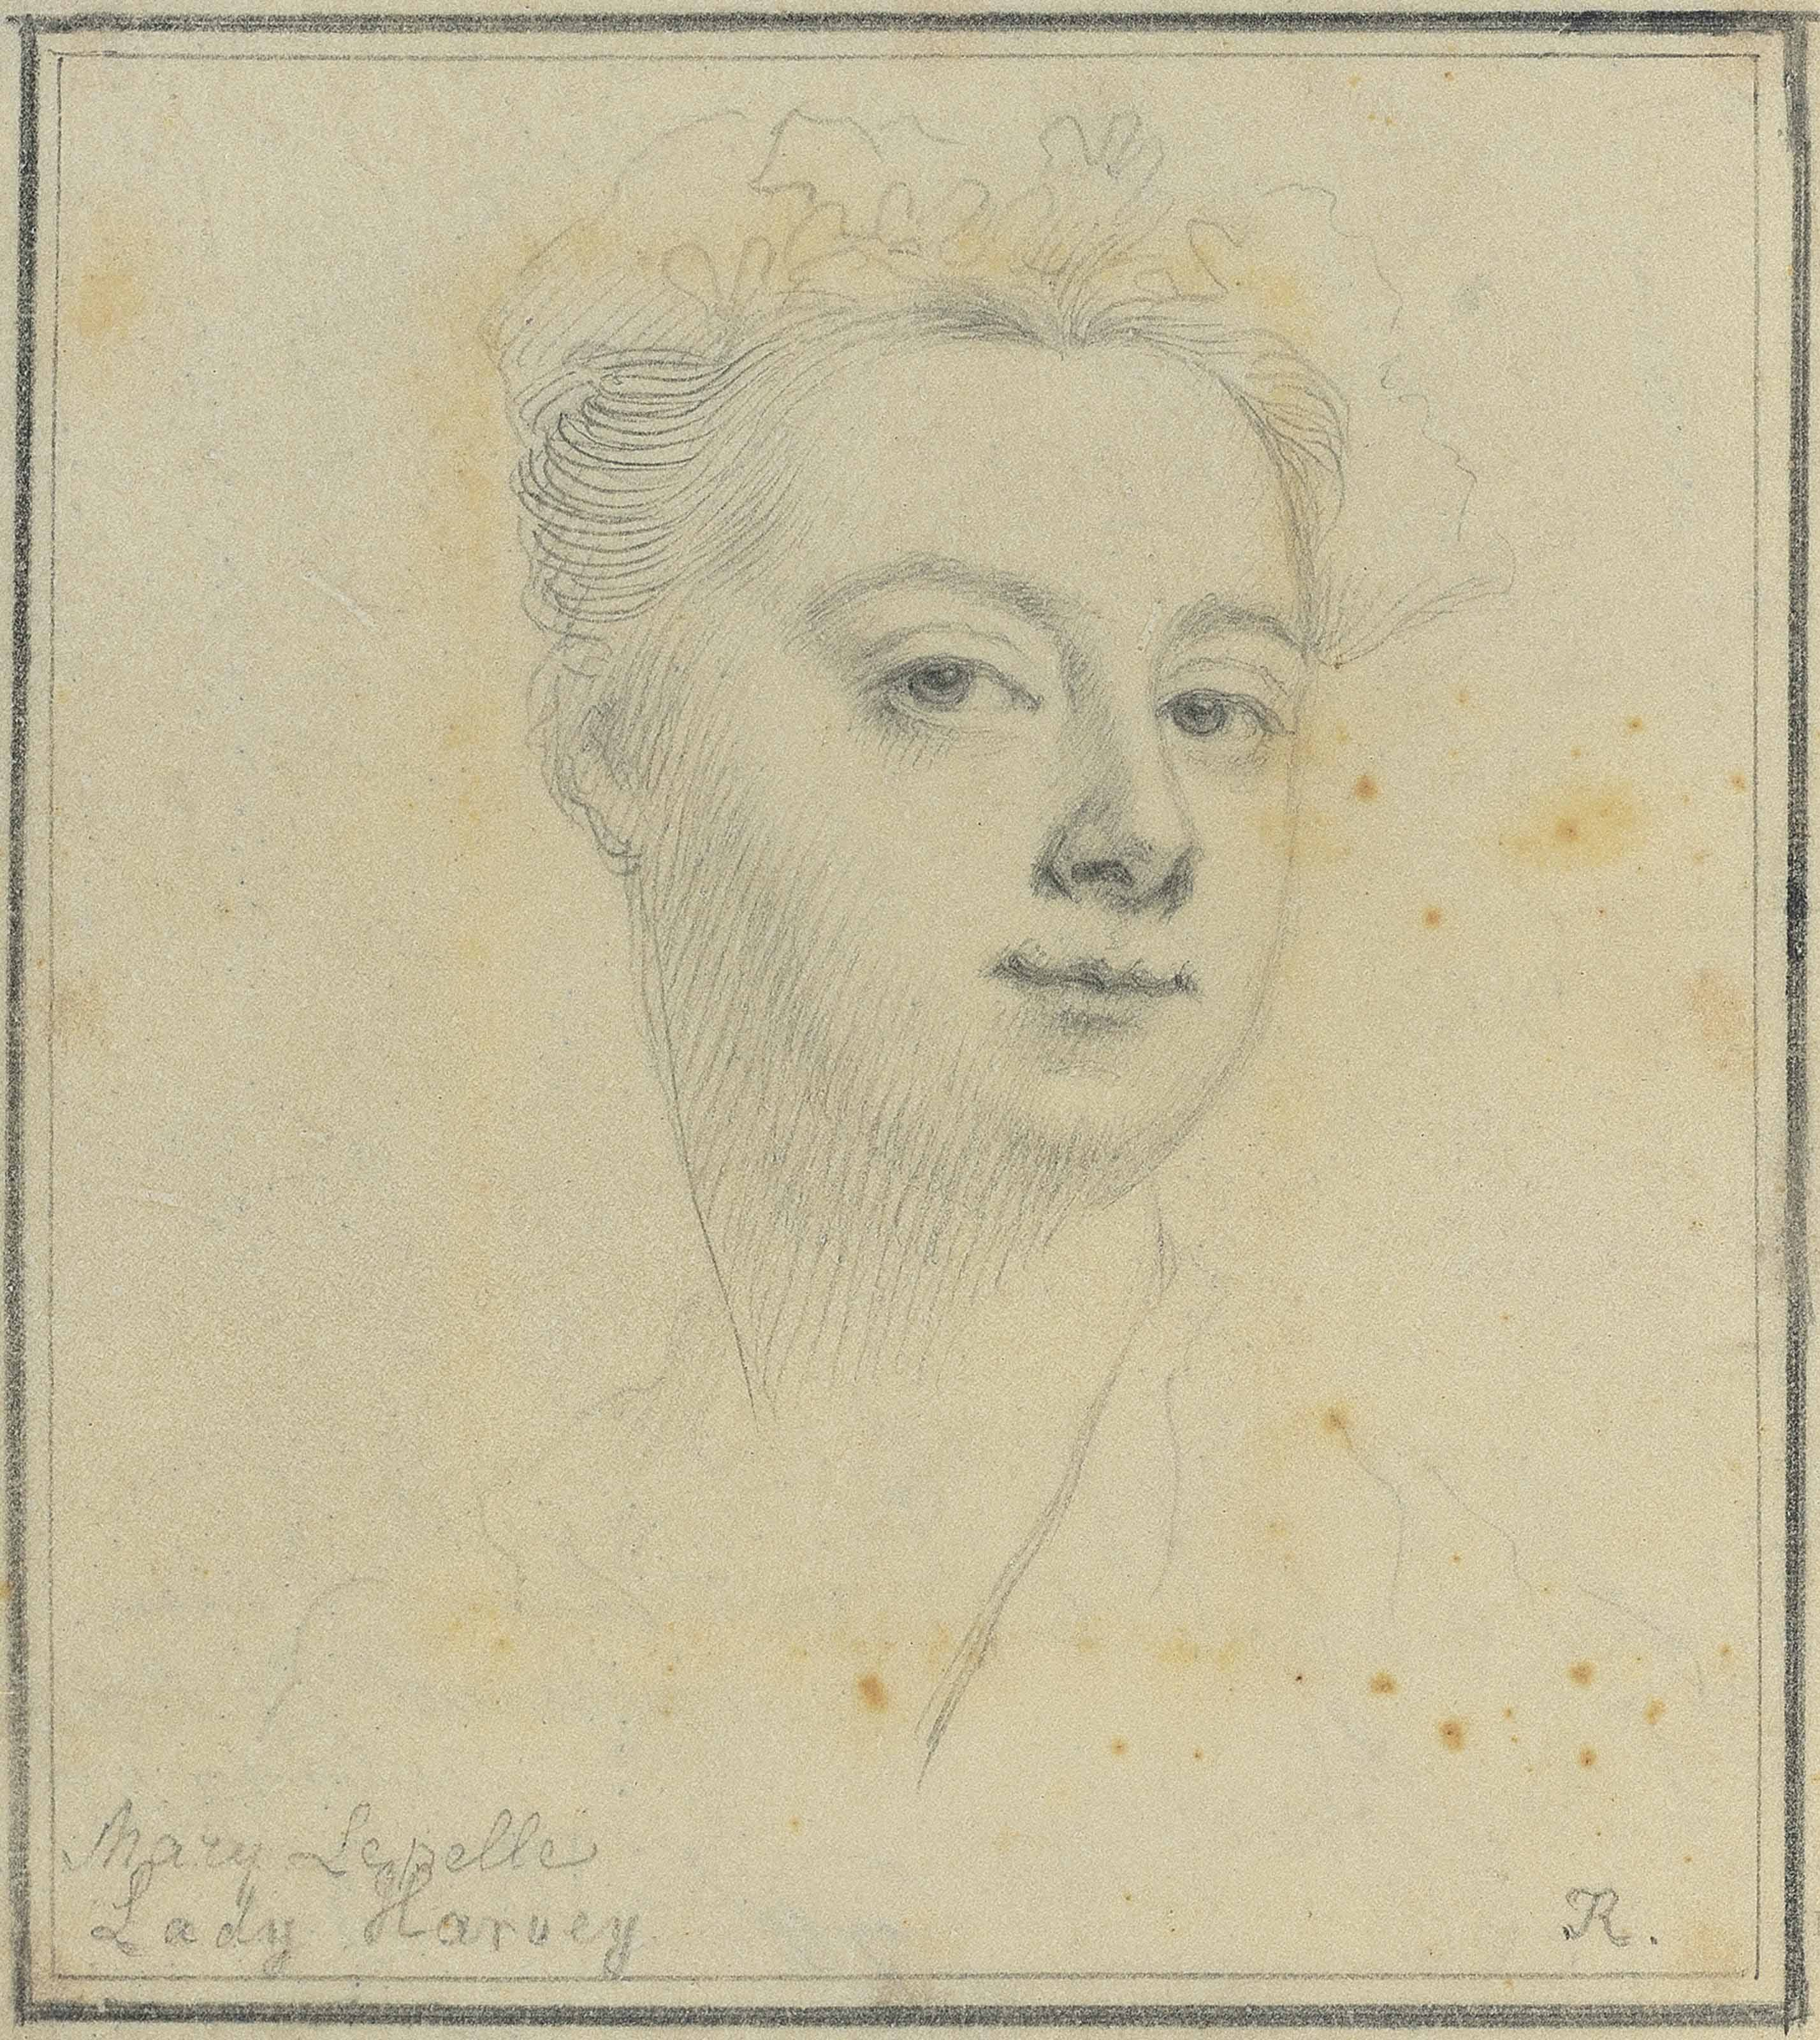 A portrait of Lady Mary Hervey, née Lepelle (1700-1768), head and shoulders within the memoir, 'Letters of Lady Mary Lepelle', 1821